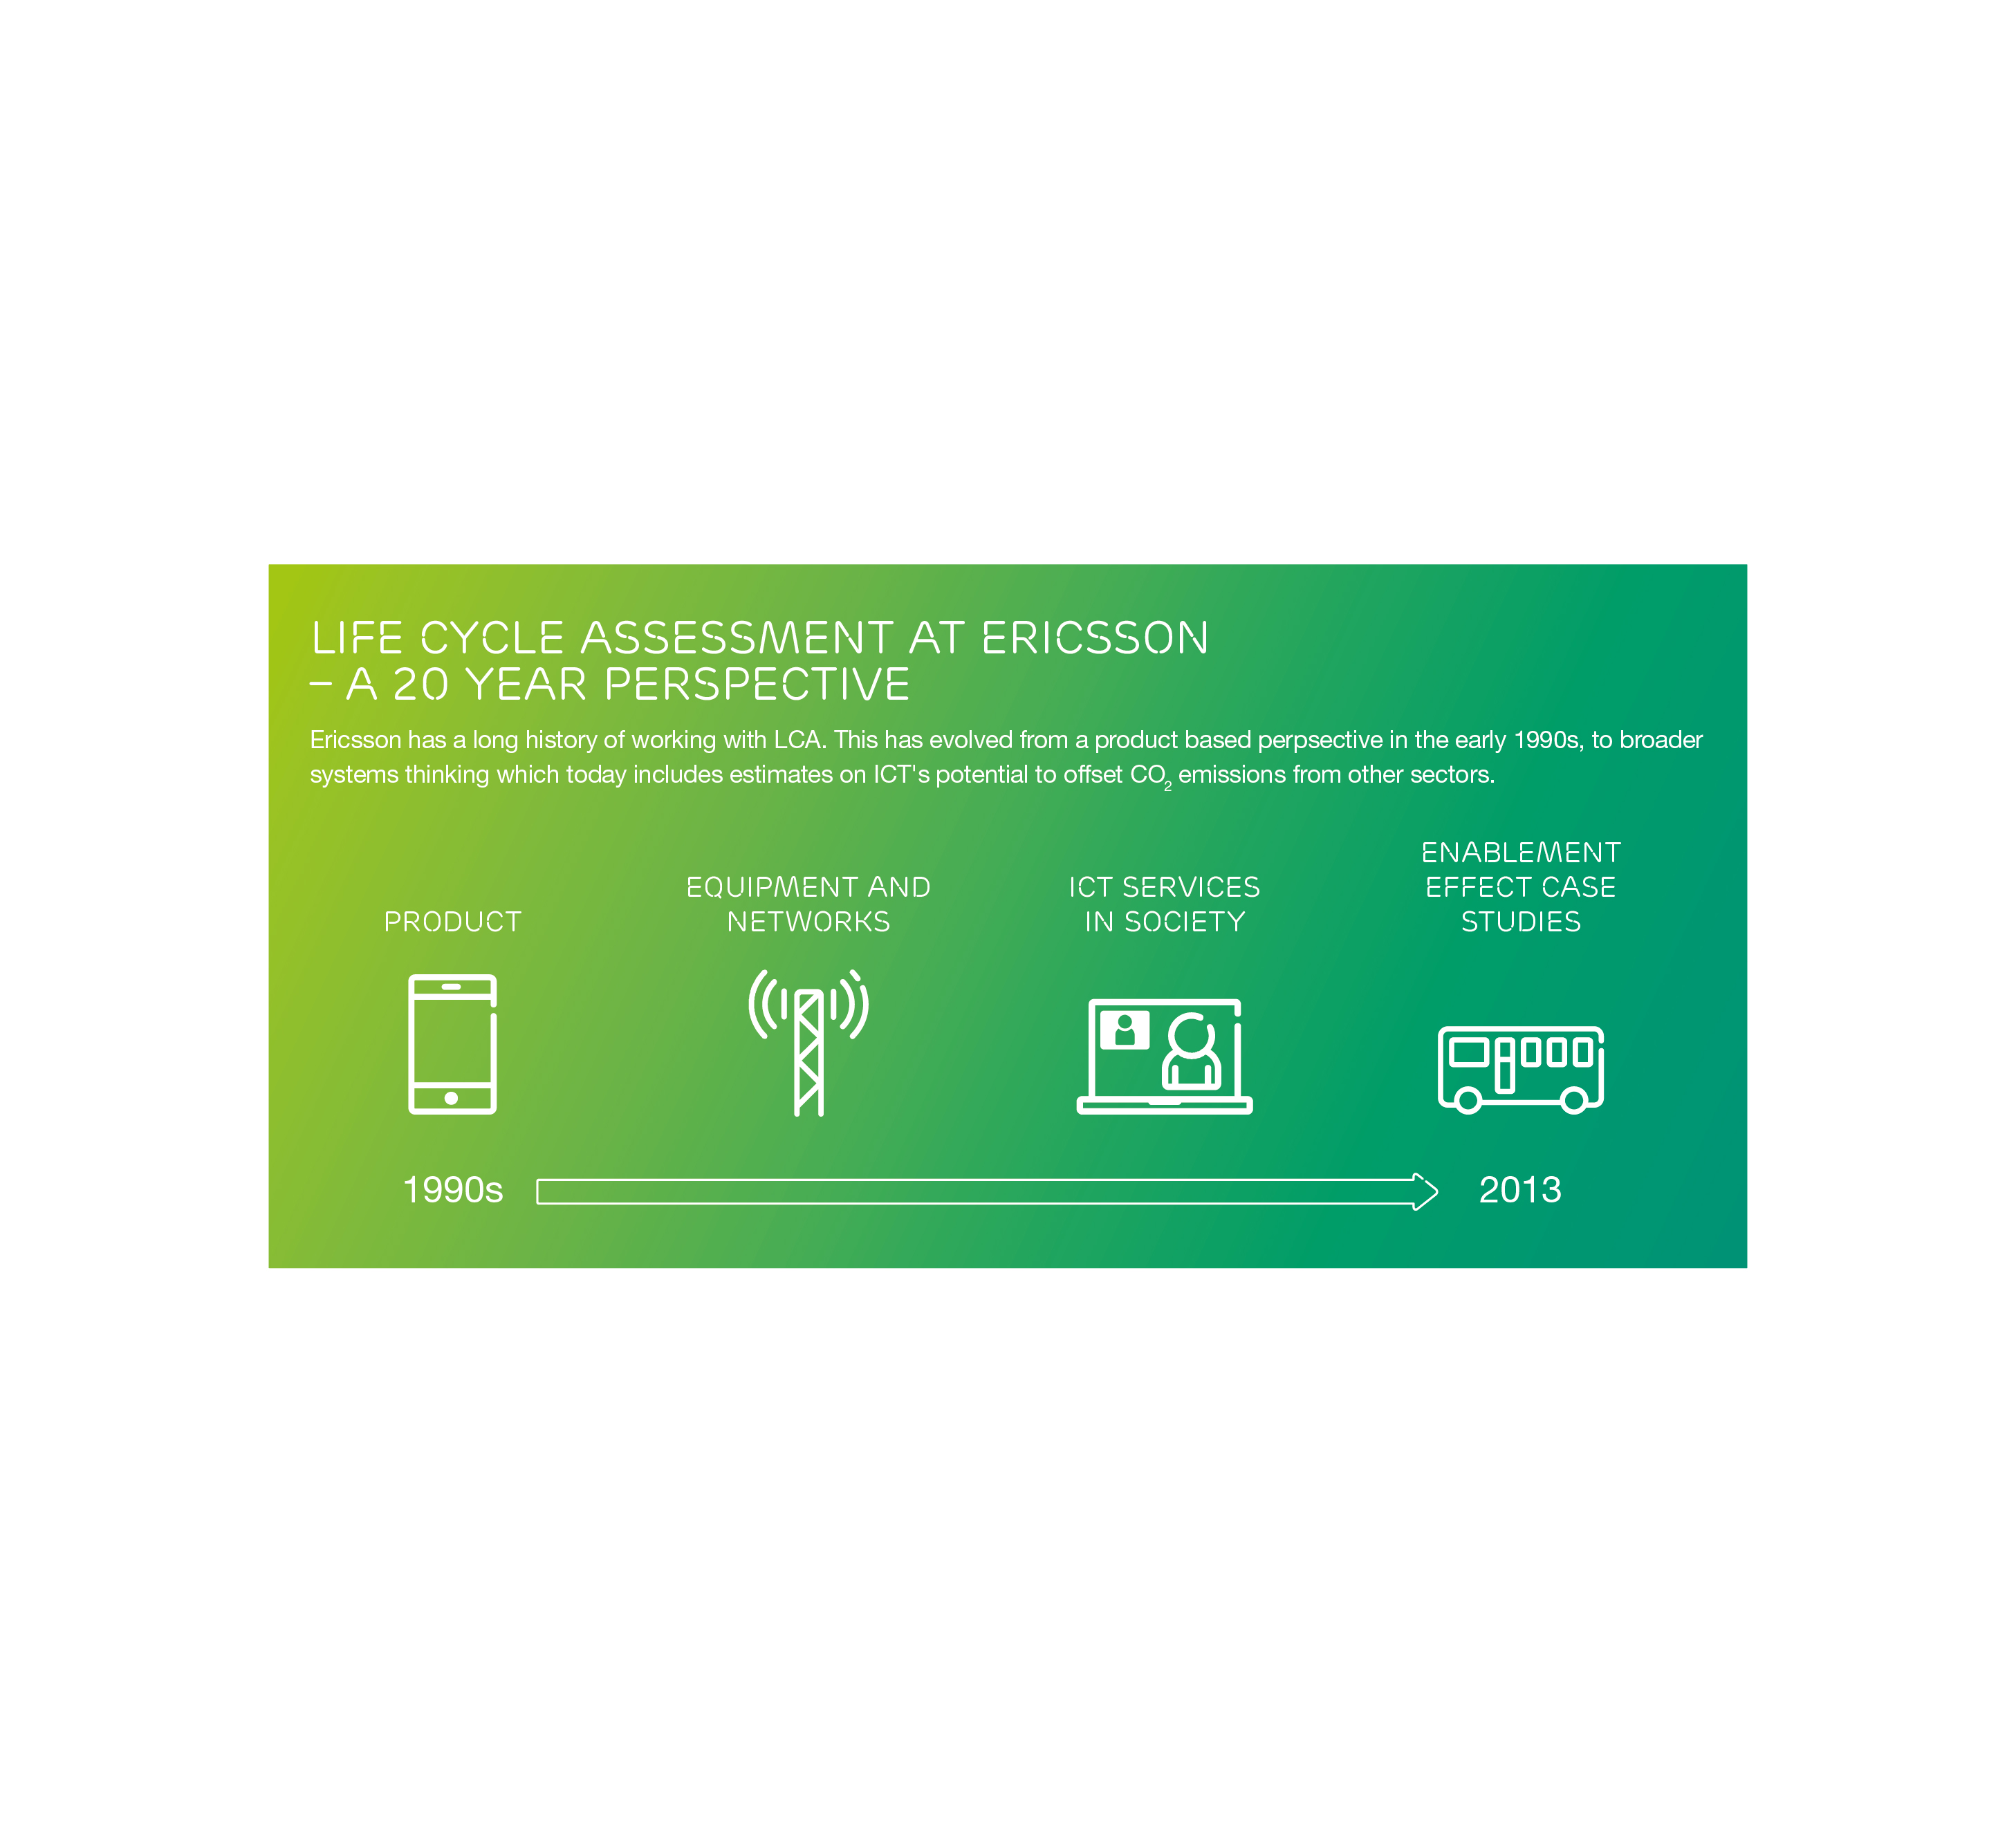 Life cycle assessment at Ericsson JPEG